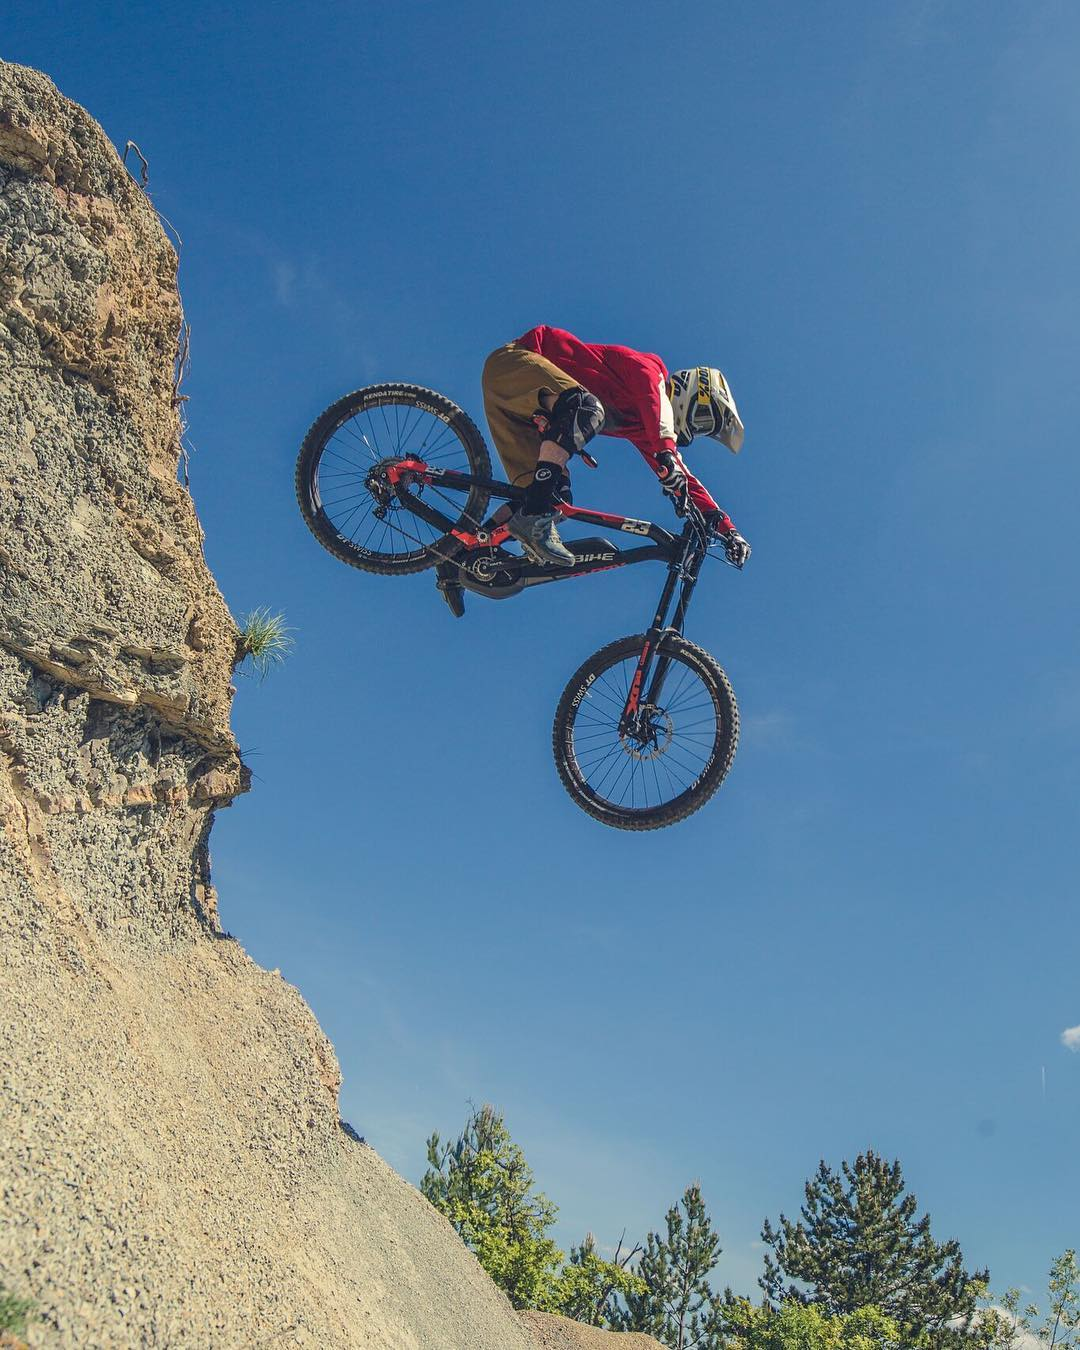 Pushing the riding to the limit. @tschugg23 📷 @hdc_m  #haibike #eperformance #xduro #dwnhll #emtb #ebike #downhill #mtb #weareeperformance #downhillmtb